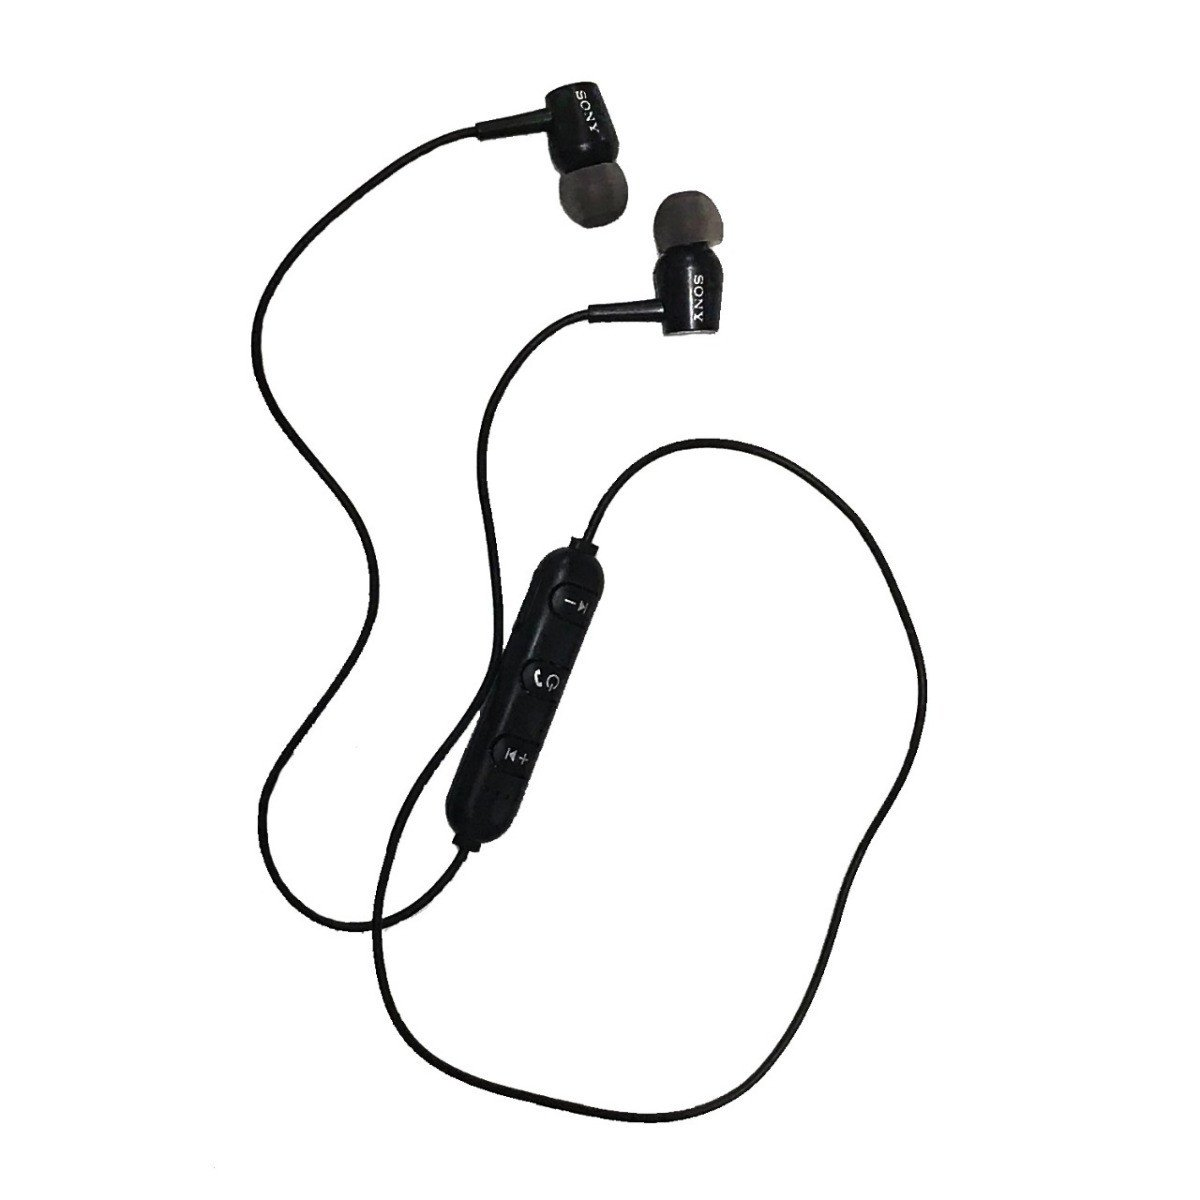 Sony HiFi Stereo Wireless Bluetooth Sports Earphones MH-750 MJ6688